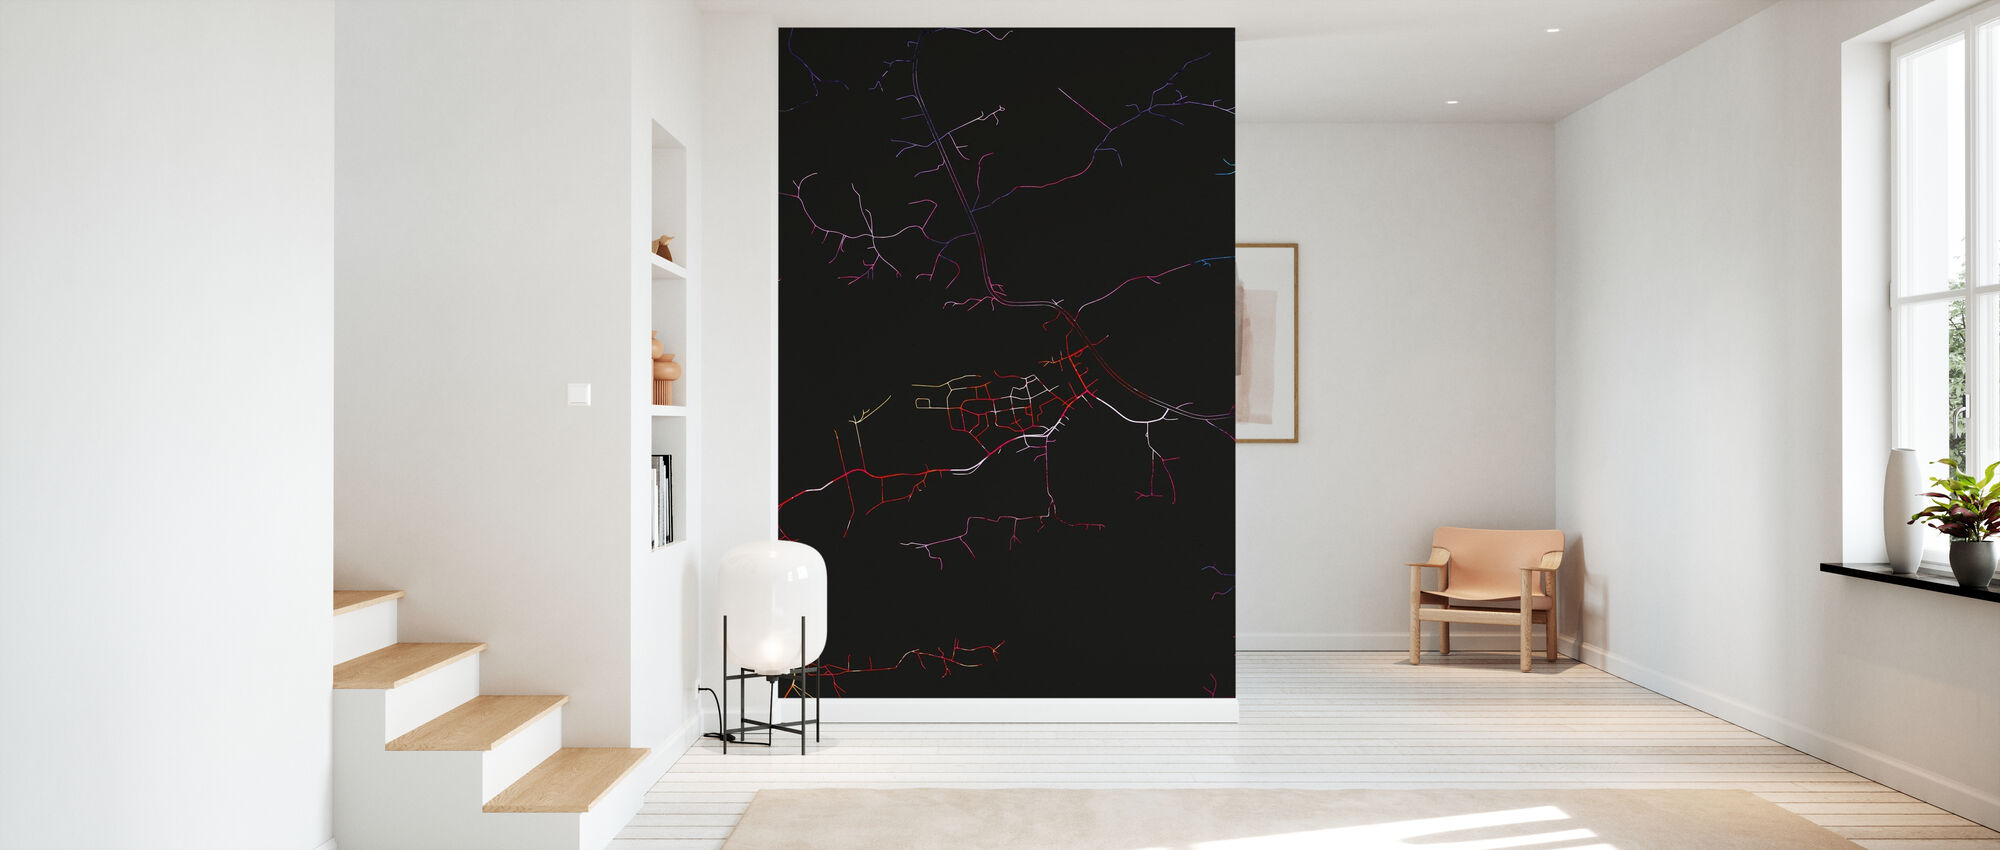 Tampere in Finland - Map - Wallpaper - Hallway